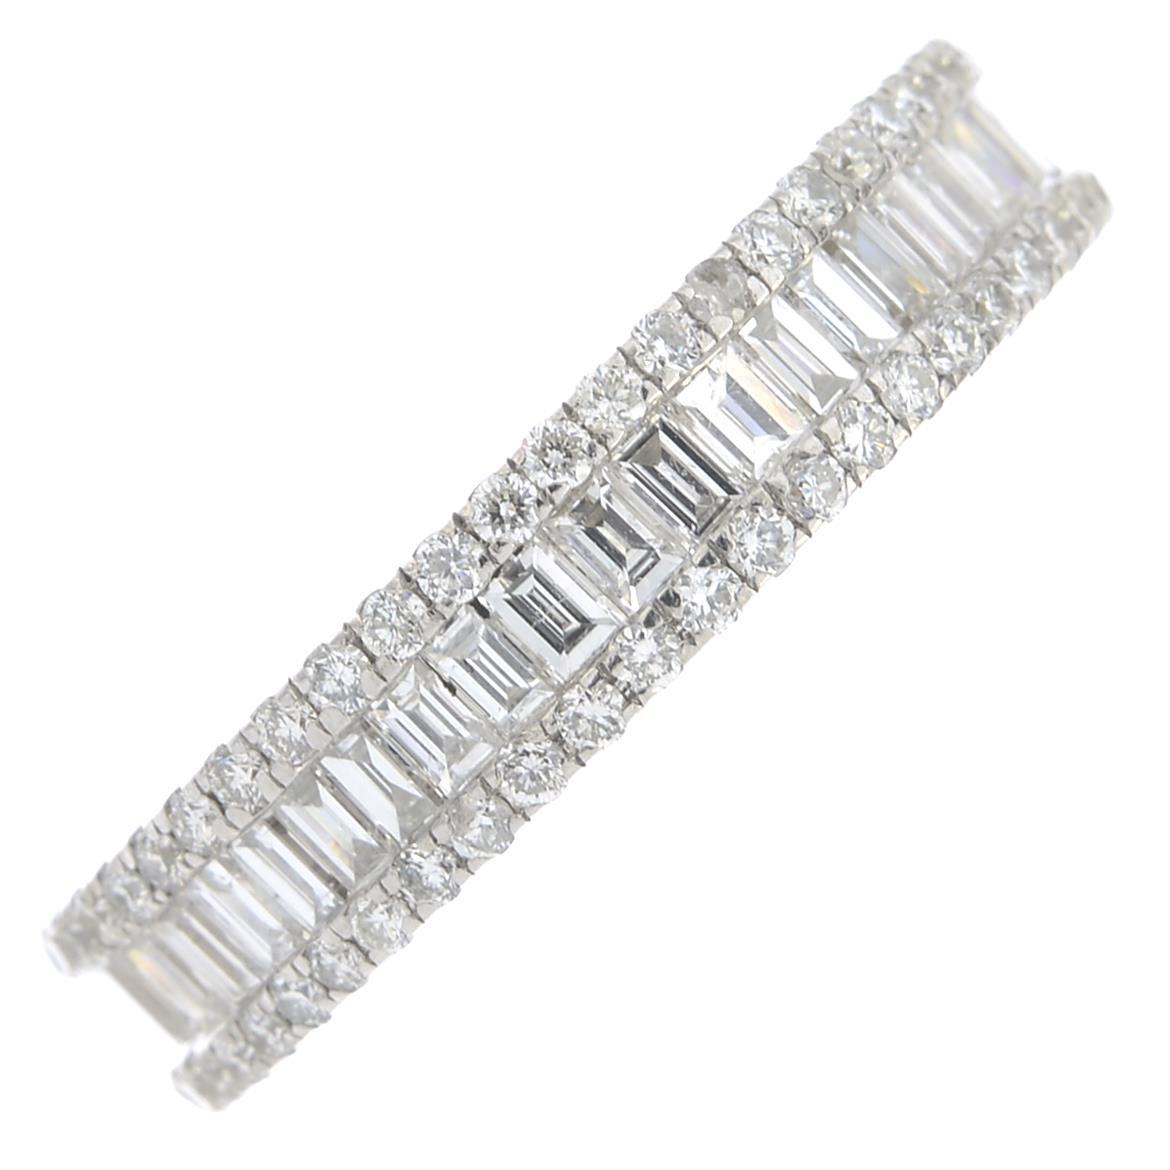 Lot 252 - An 18ct gold baguette and brilliant-cut diamond full circle eternity ring.Estimated total diamond